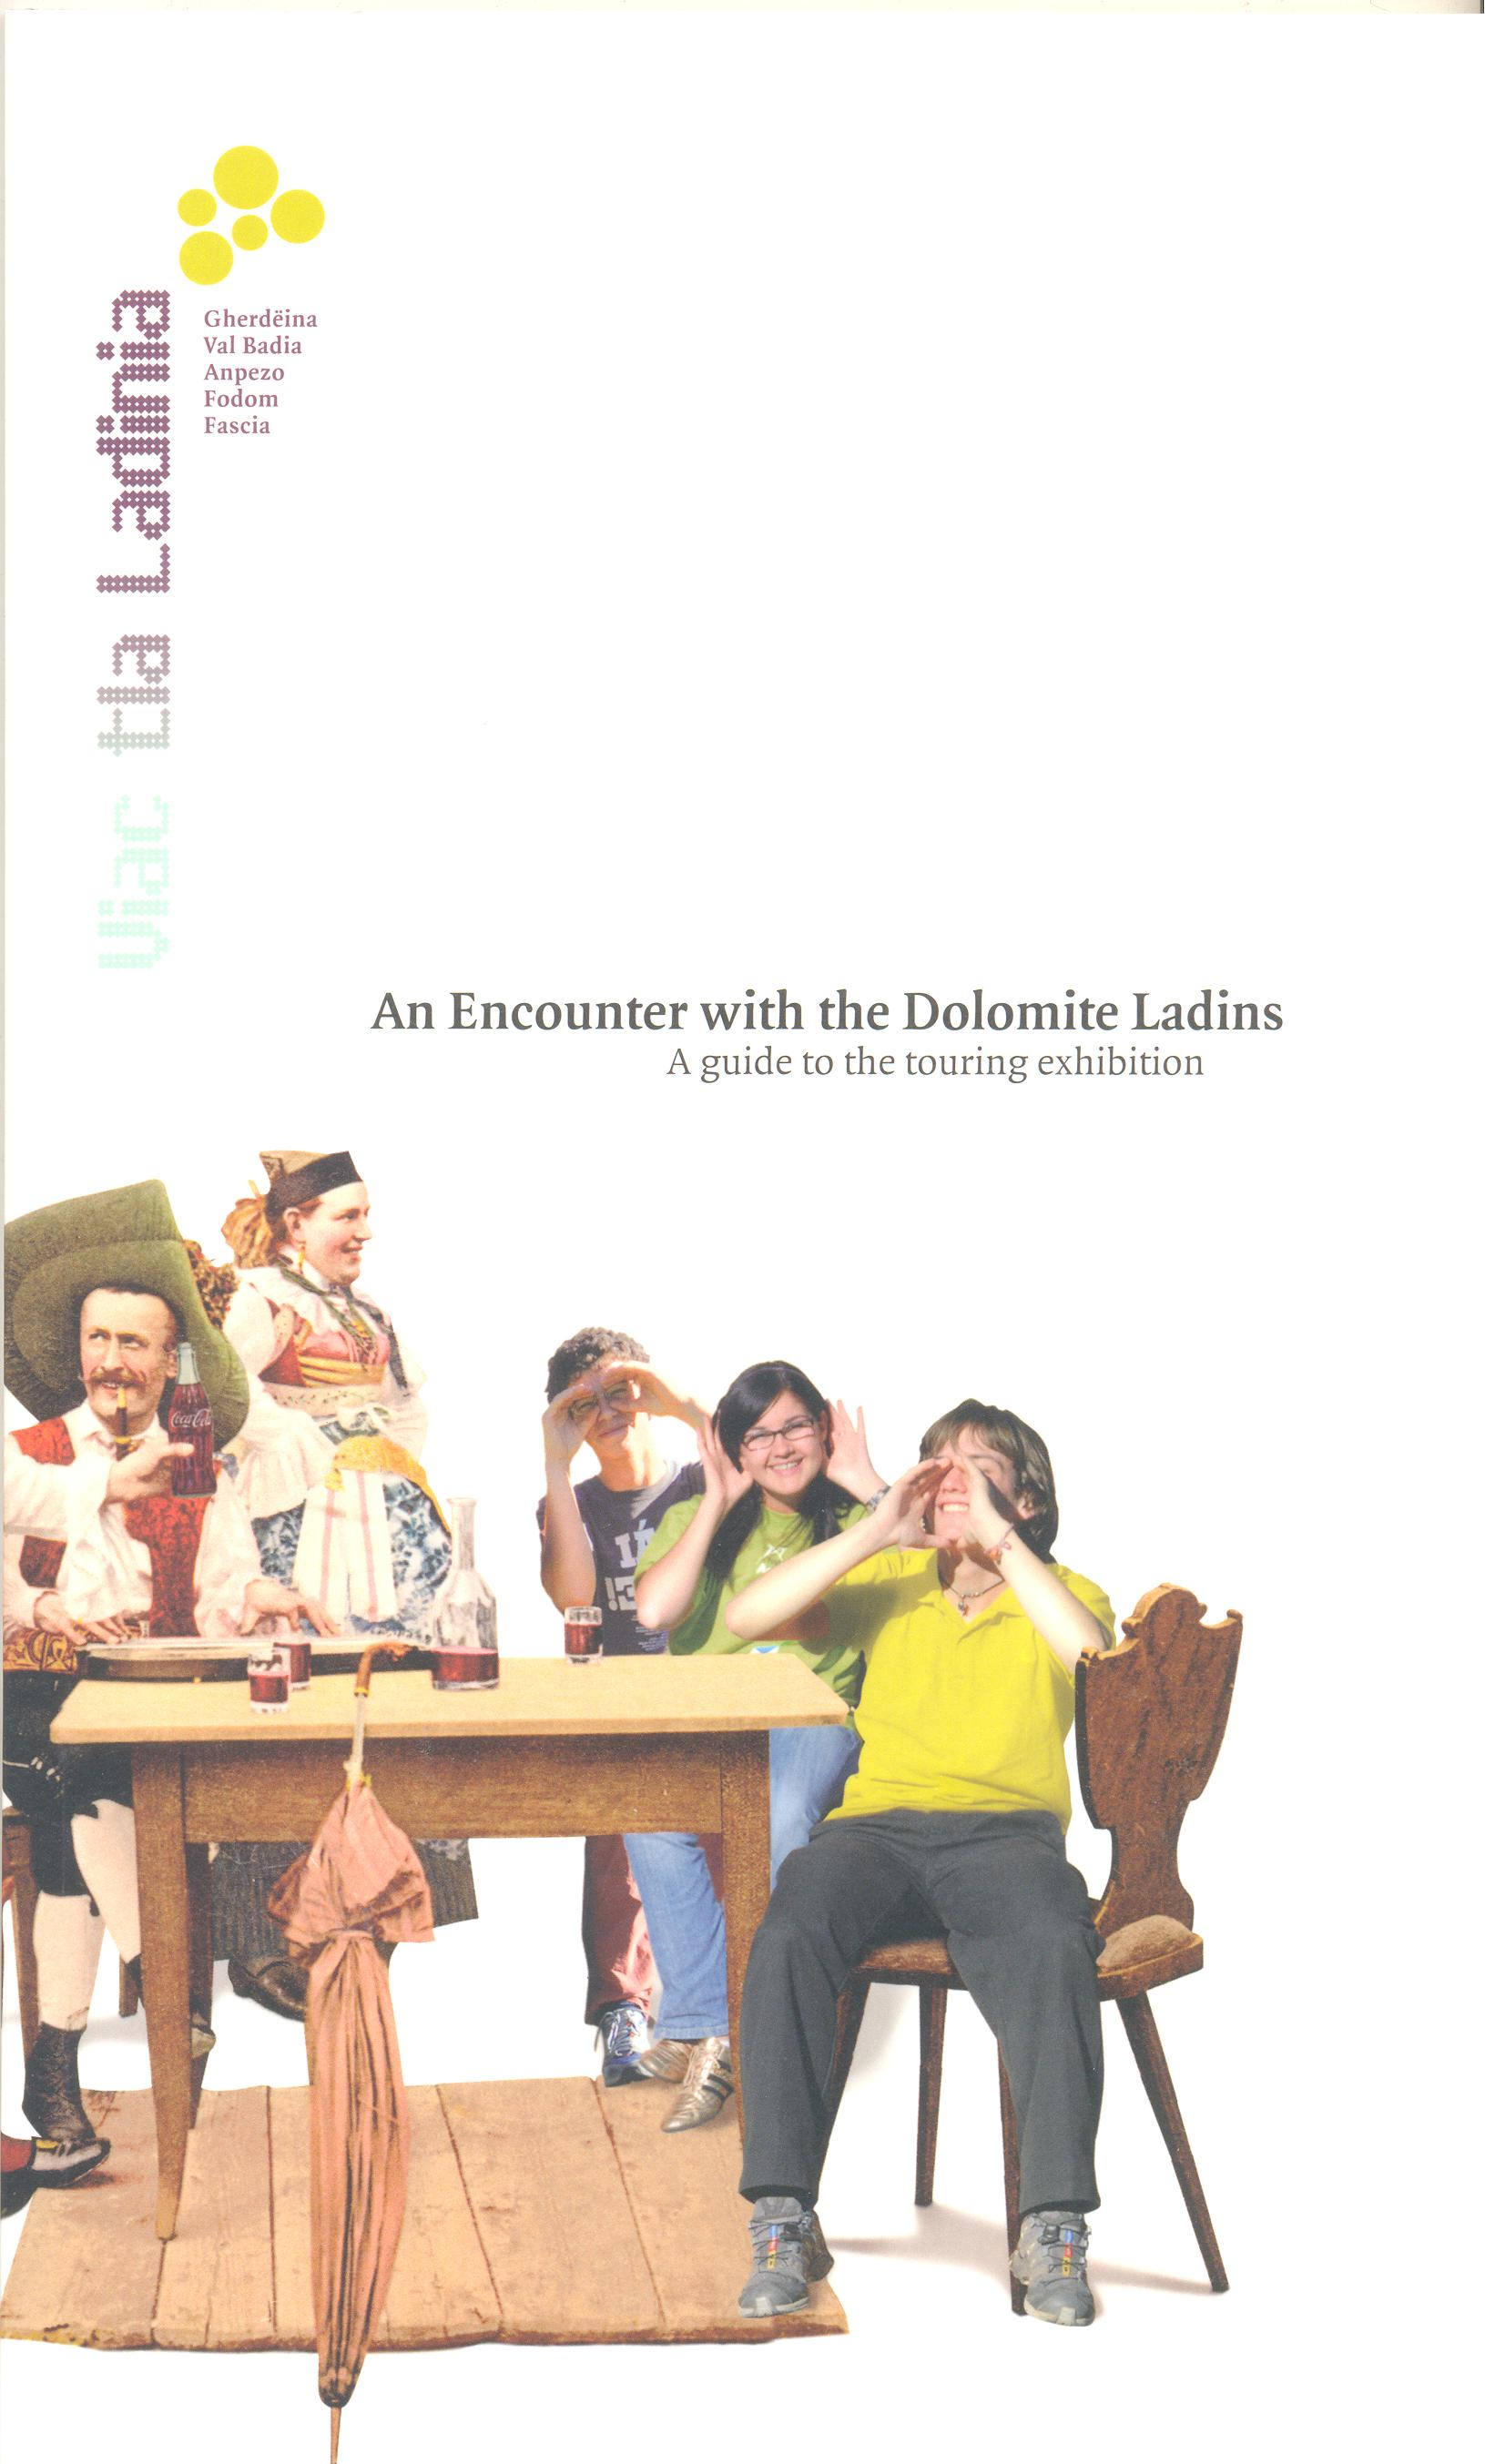 An Encounter with the Dolomite Ladins